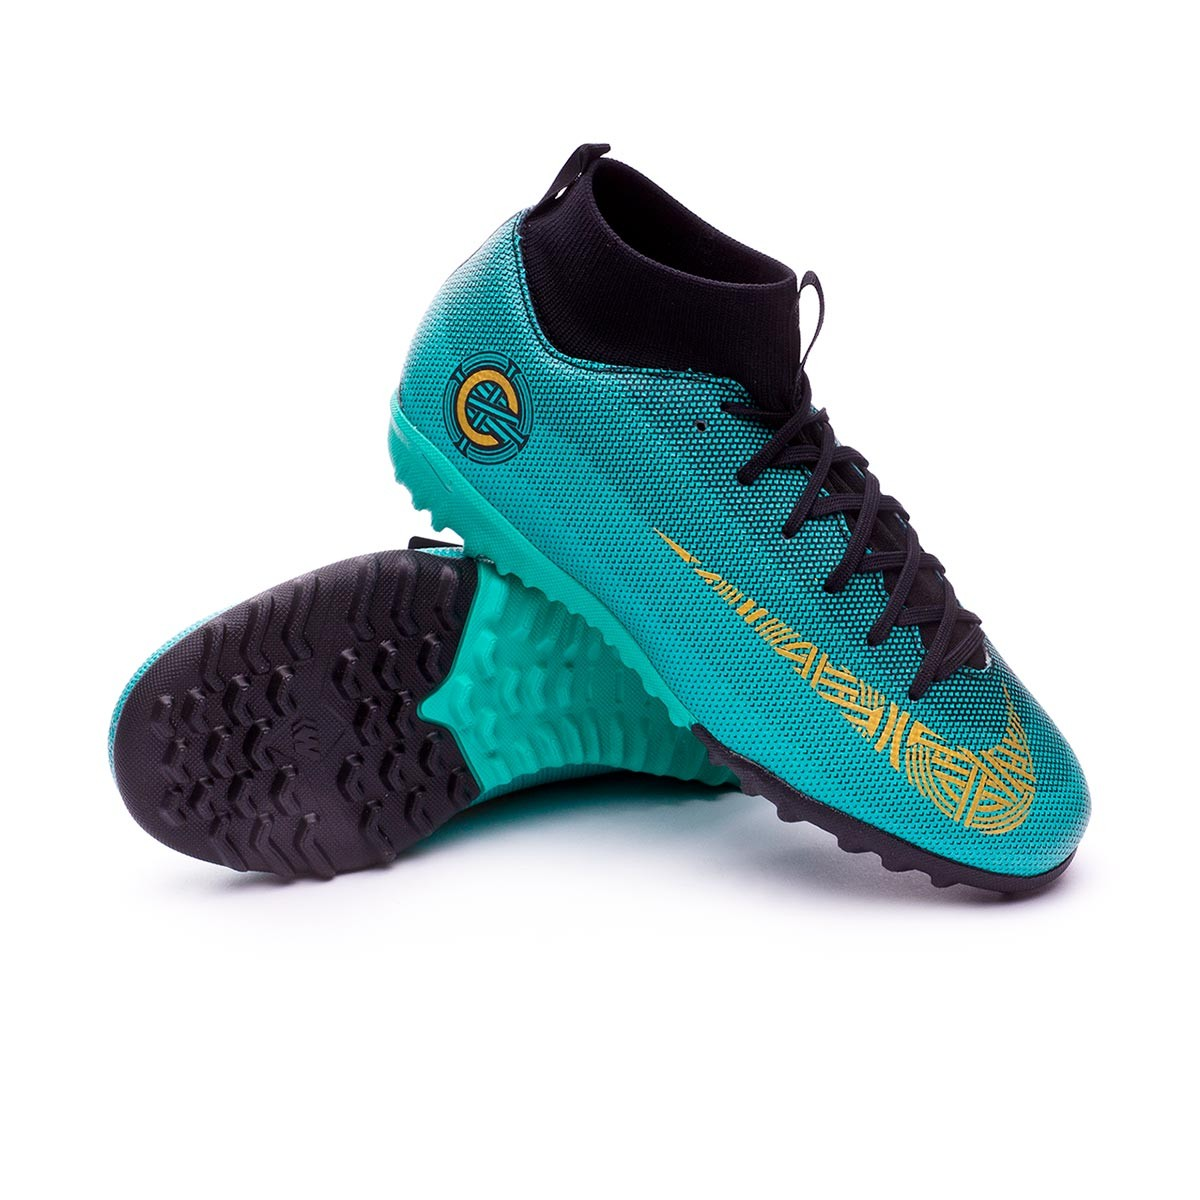 new product 8227e 0ff60 Nike Kids Mercurial Superfly VI Academy GS CR7 Turf Football Boot